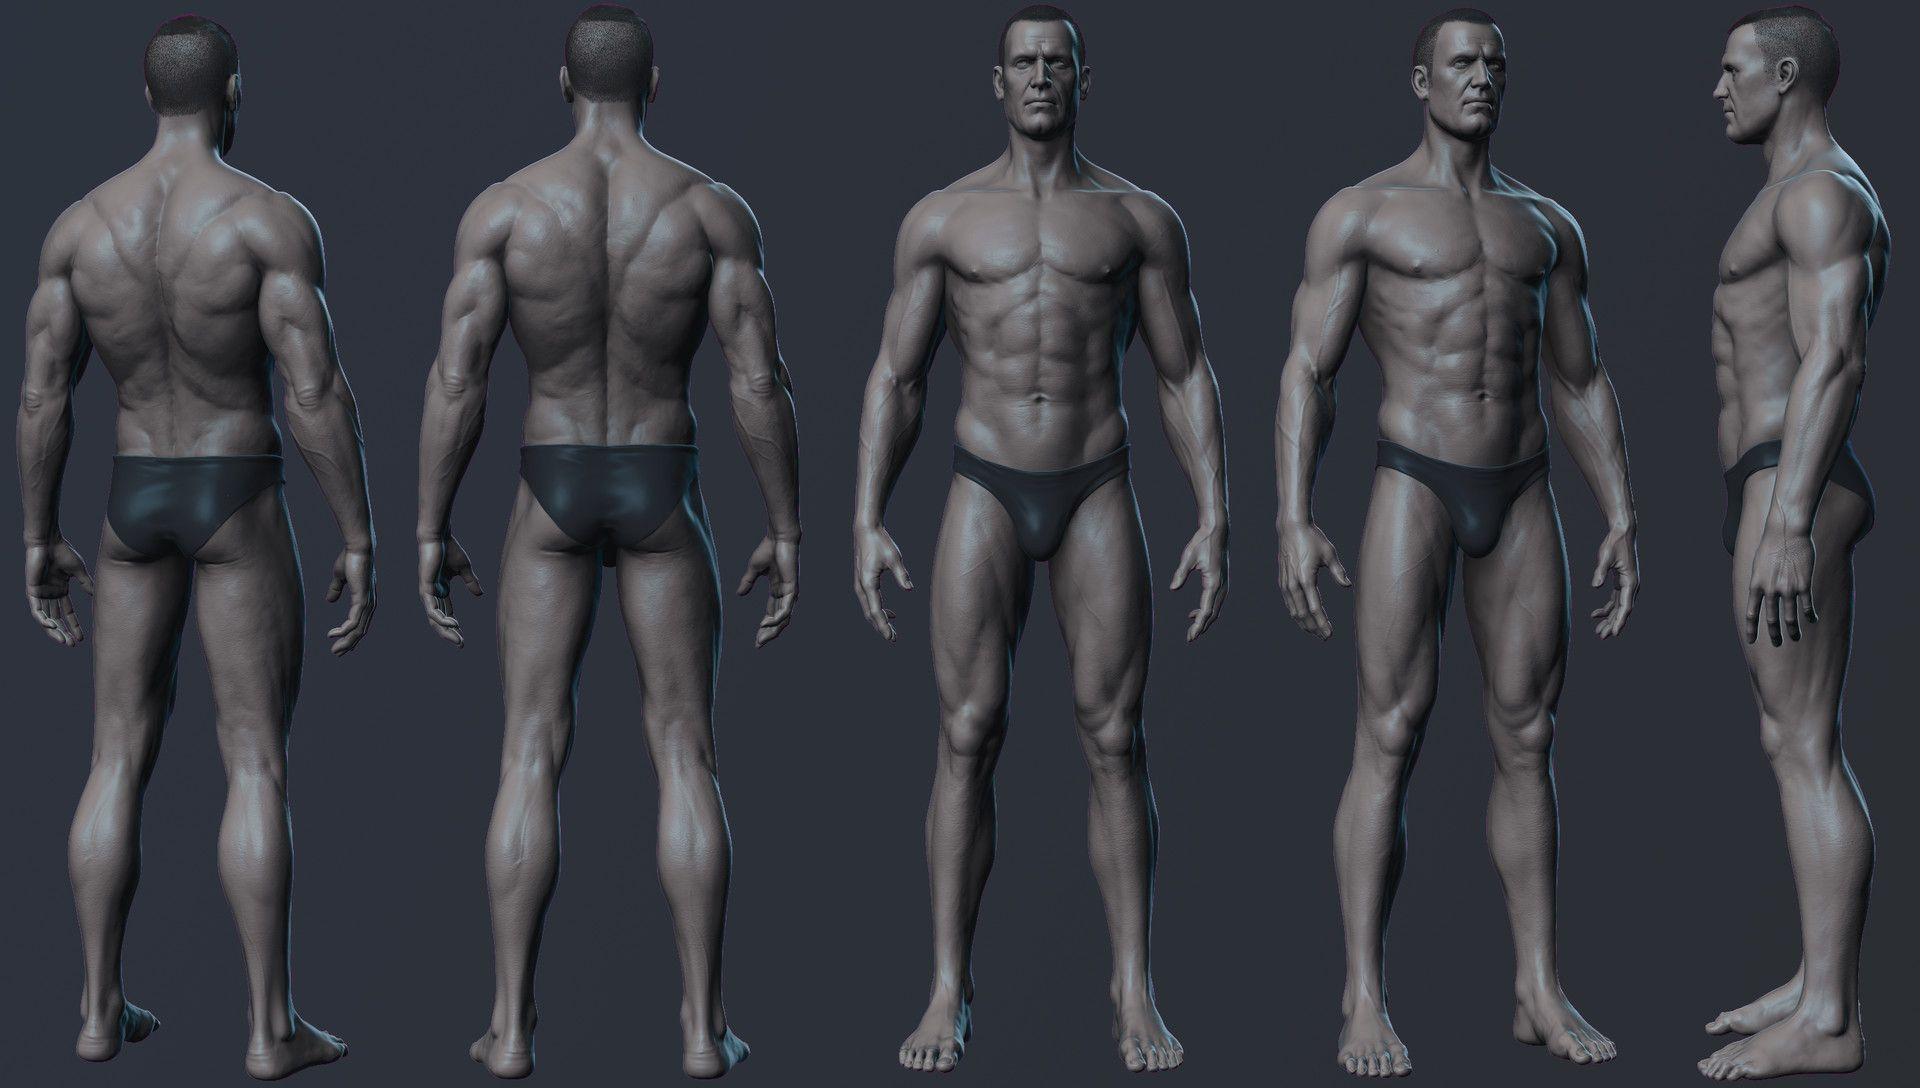 ArtStation - Male anatomy practic., Nikolay Chugunov | blueprint ...